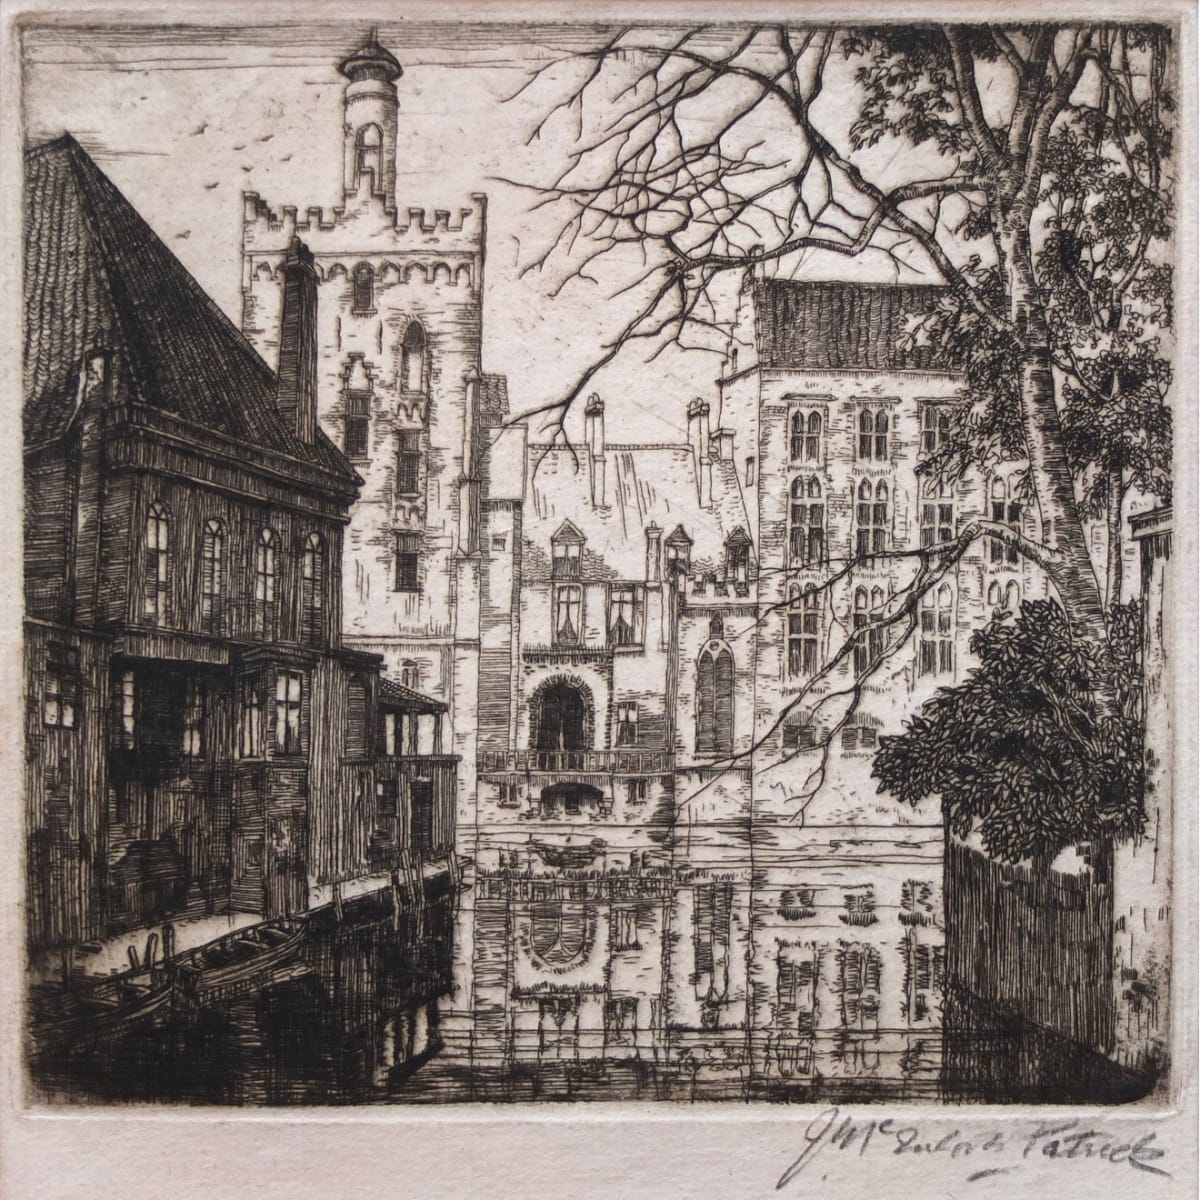 James McIntosh Patrick Bruges signed in pencil to margin etching plate size: 5 7/8 x 6 1/8 inches; sheet size: 8 9/16 x 7 1/8 inches